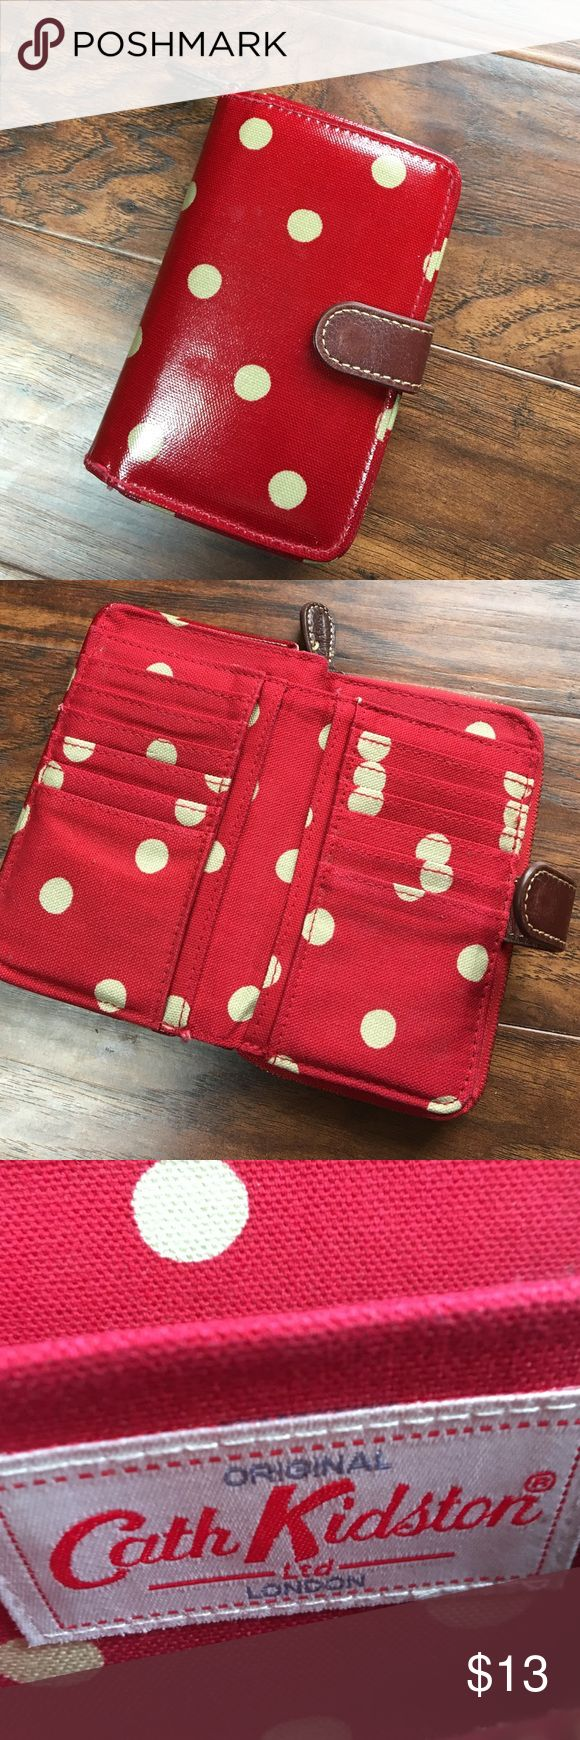 Cath Kidston Button Spot Folded Zip Wallet This adorable wallet is classic Cath Kidston! It holds a ton of cards, coins and cash. It's in great condition and ready for a new home! Cath Kidston Bags Wallets